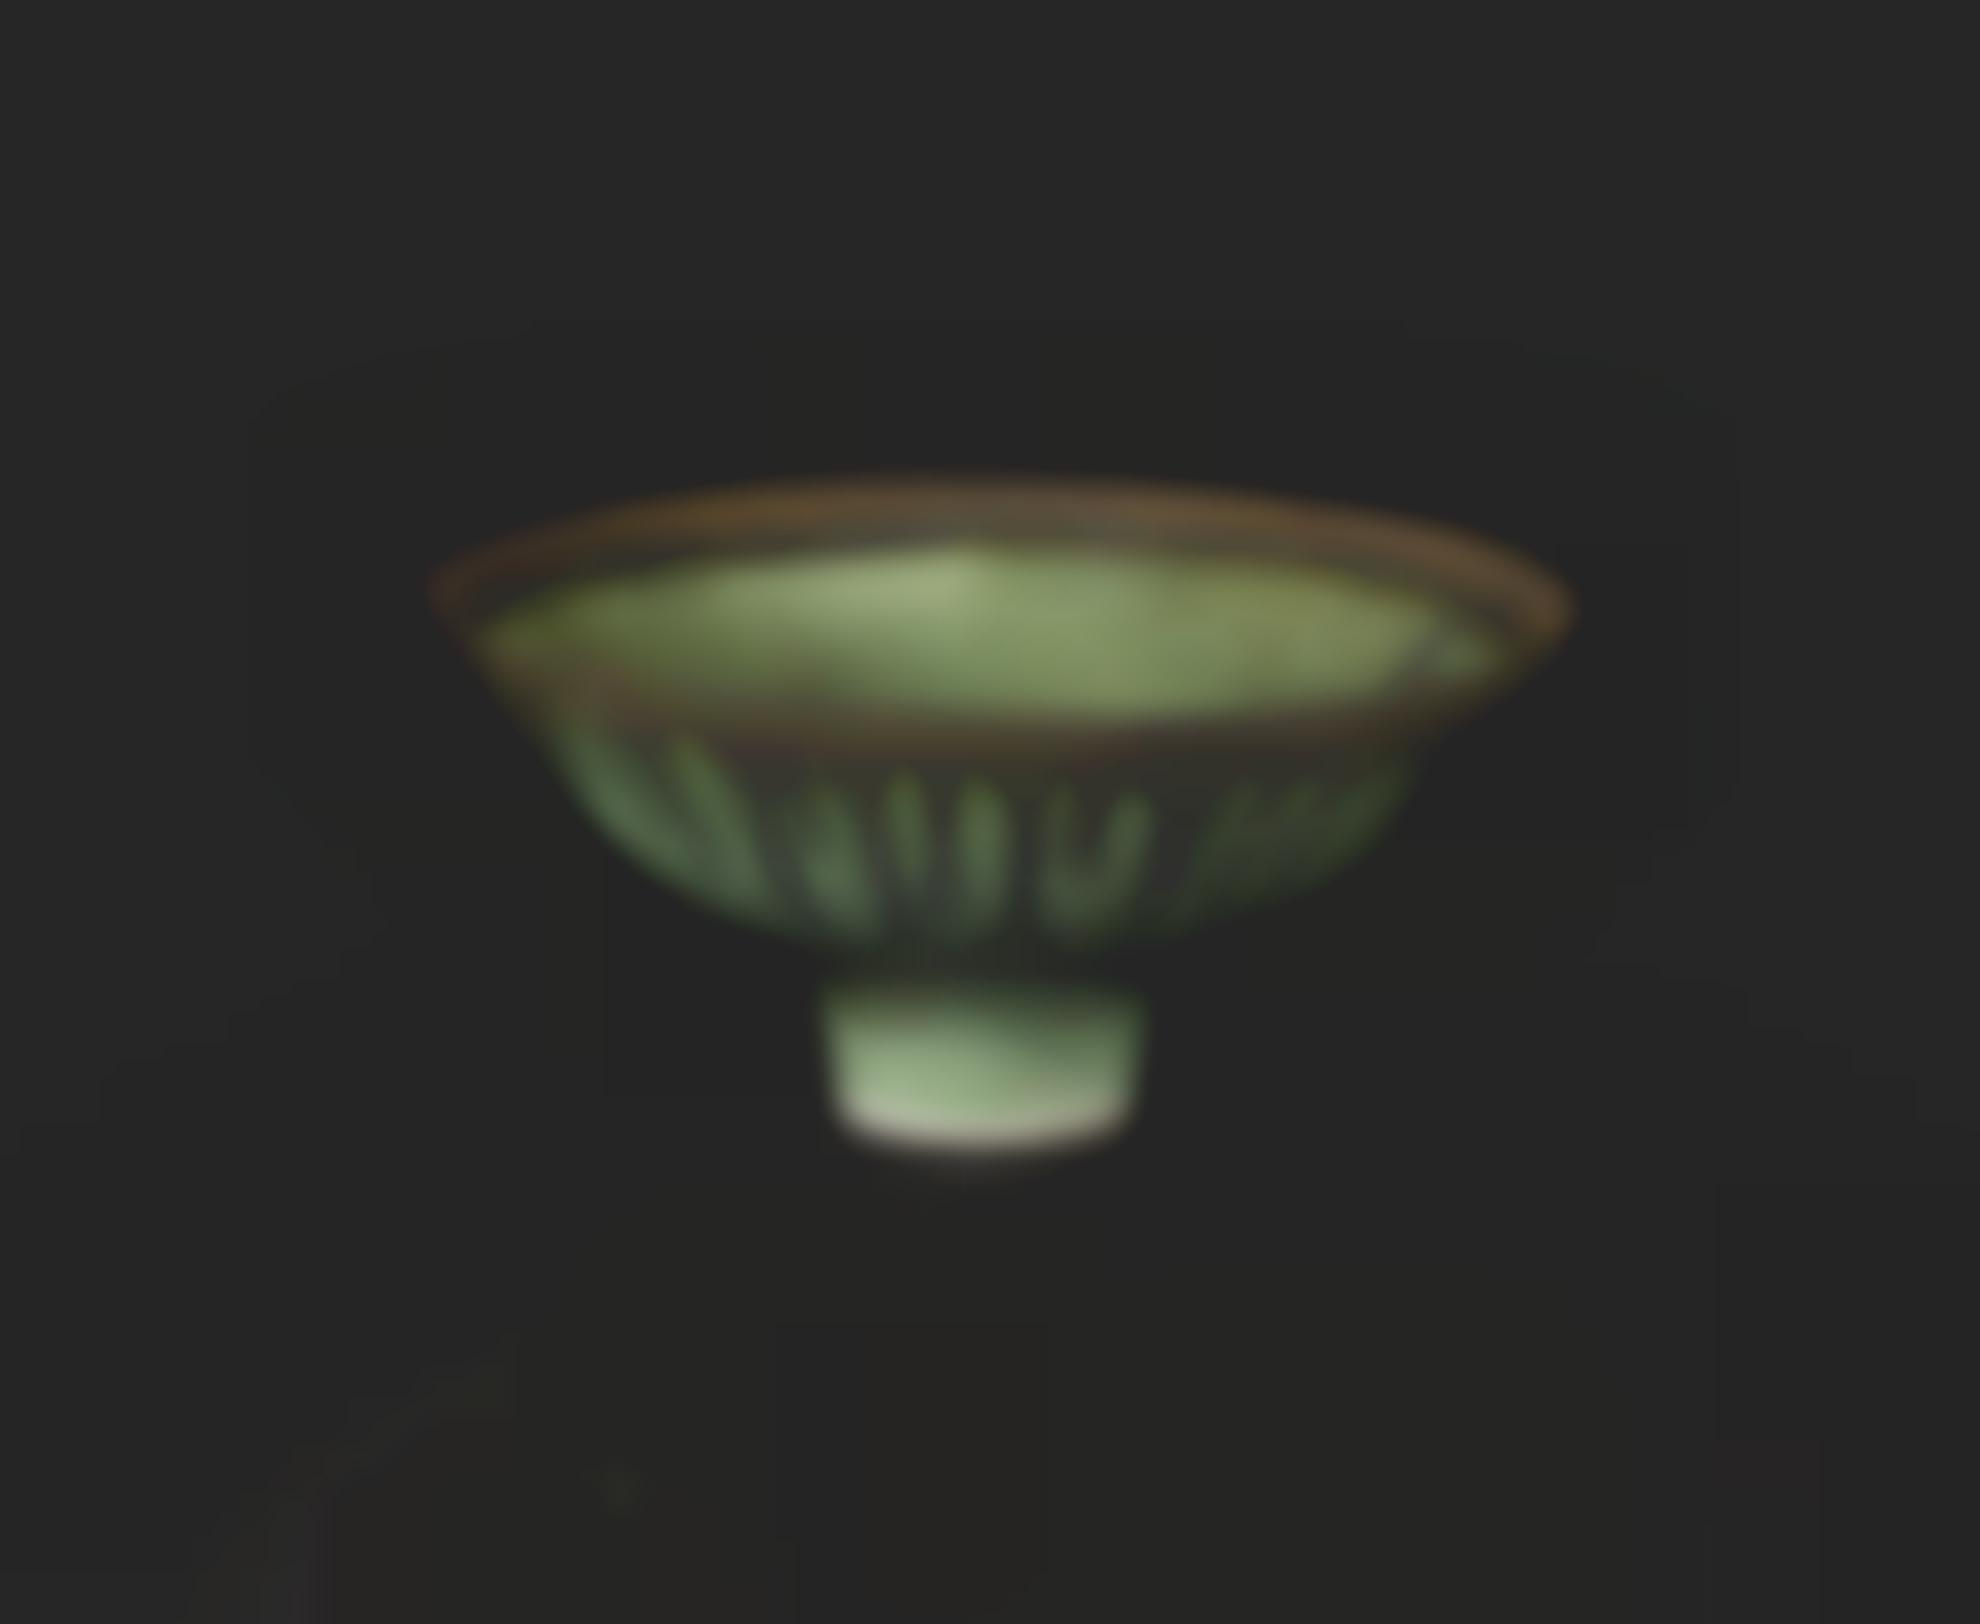 Dame Lucie Rie - Emerald Green Bowl With Bronzed Rim-1987